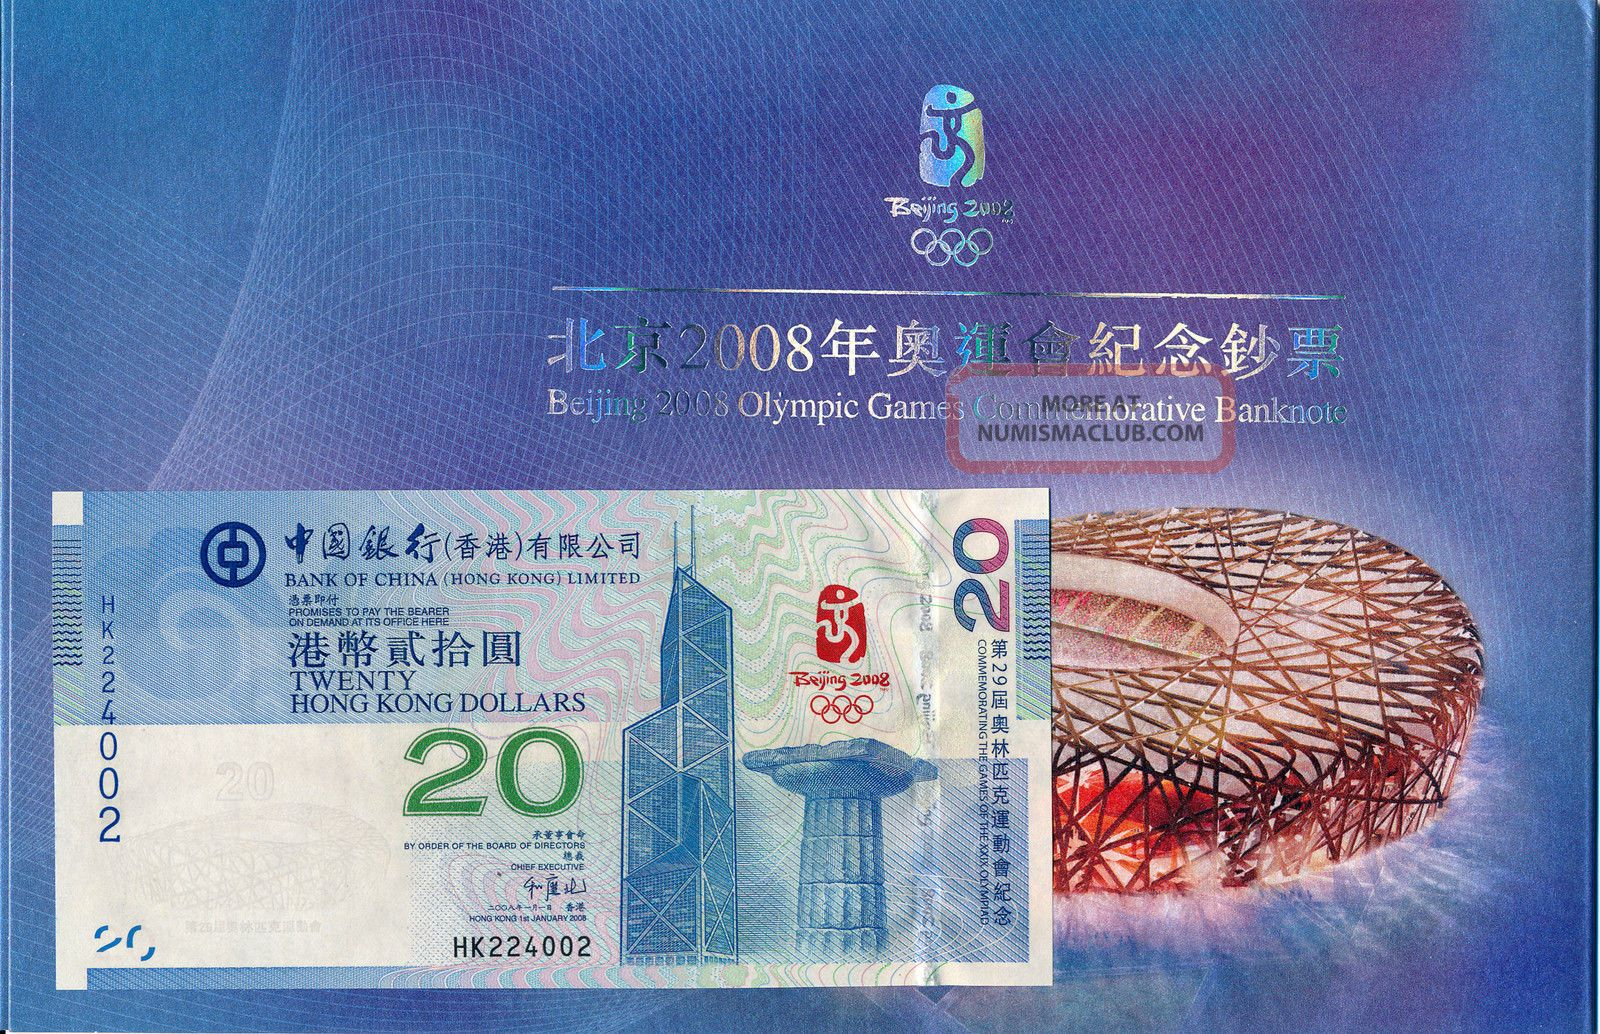 2008 Commemorative note Olympic Games Hong Kong 20 dollars Beijing